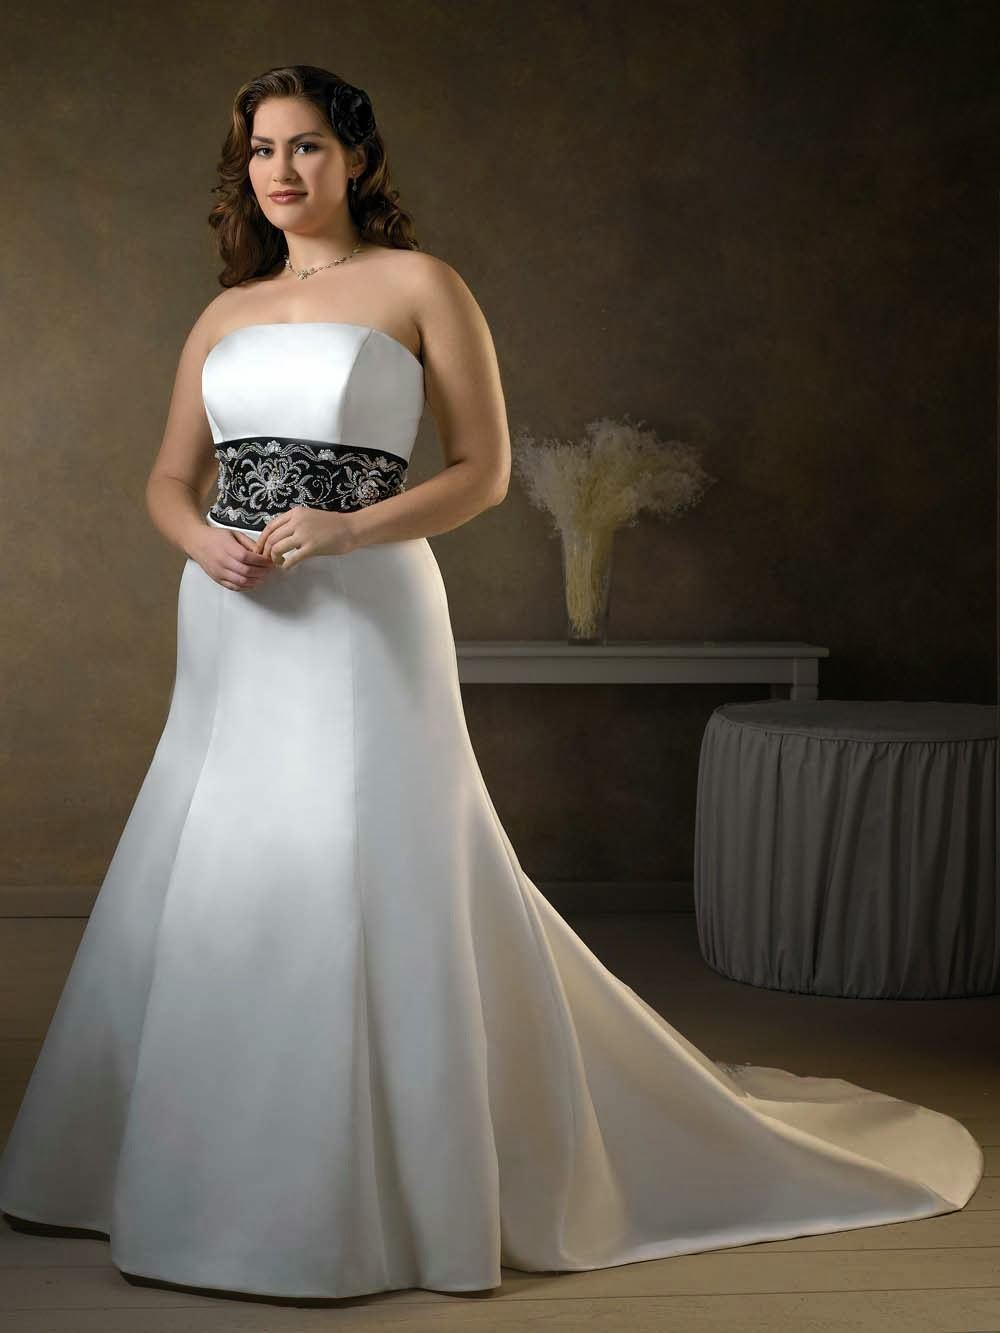 Used wedding gown get high quality plus size dress with for Cheap but beautiful wedding dresses